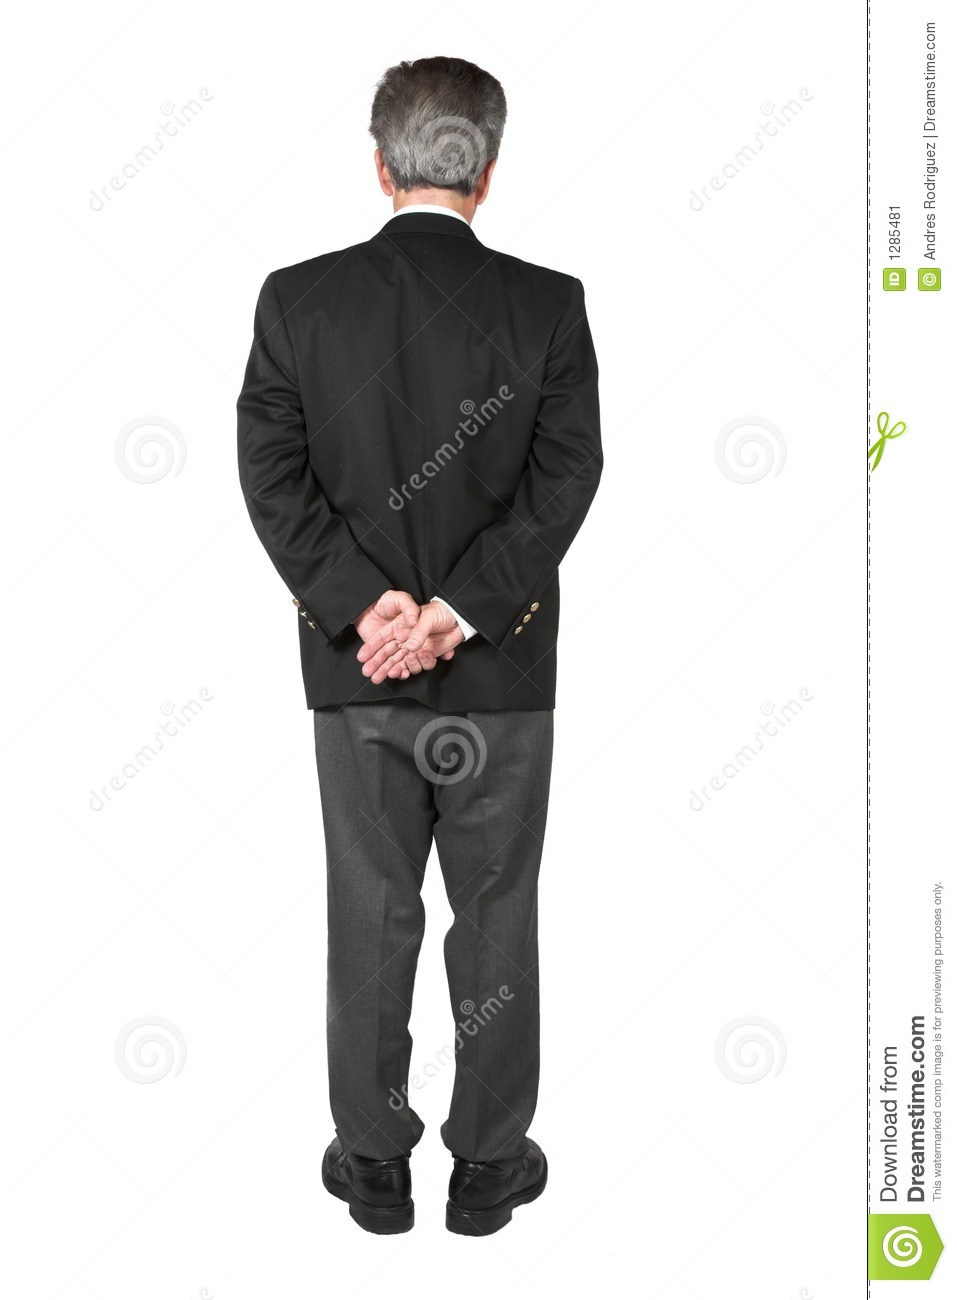 business-man-standing-back-1285481.jpg